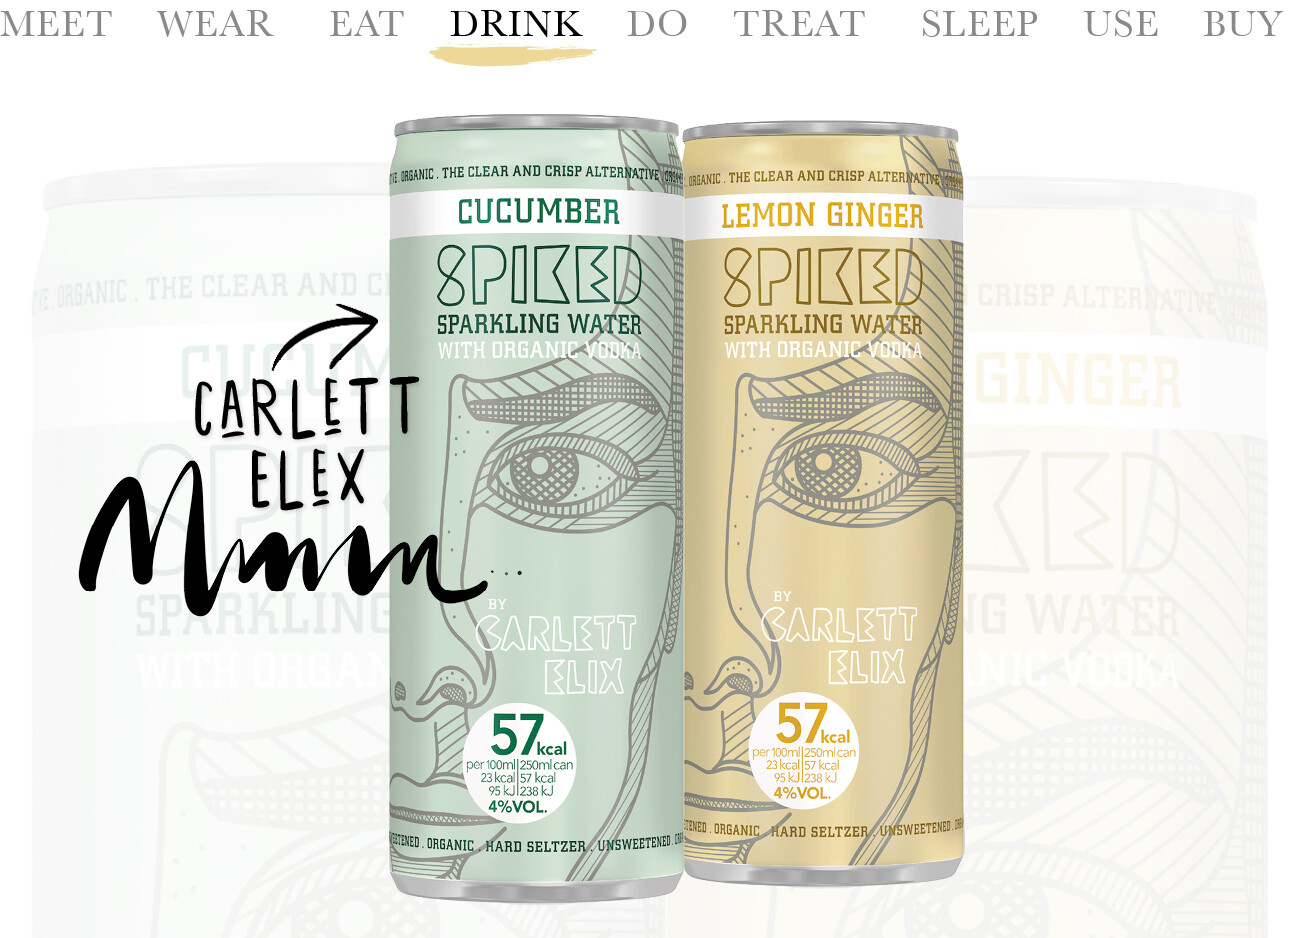 Today we drink Carlett Elix